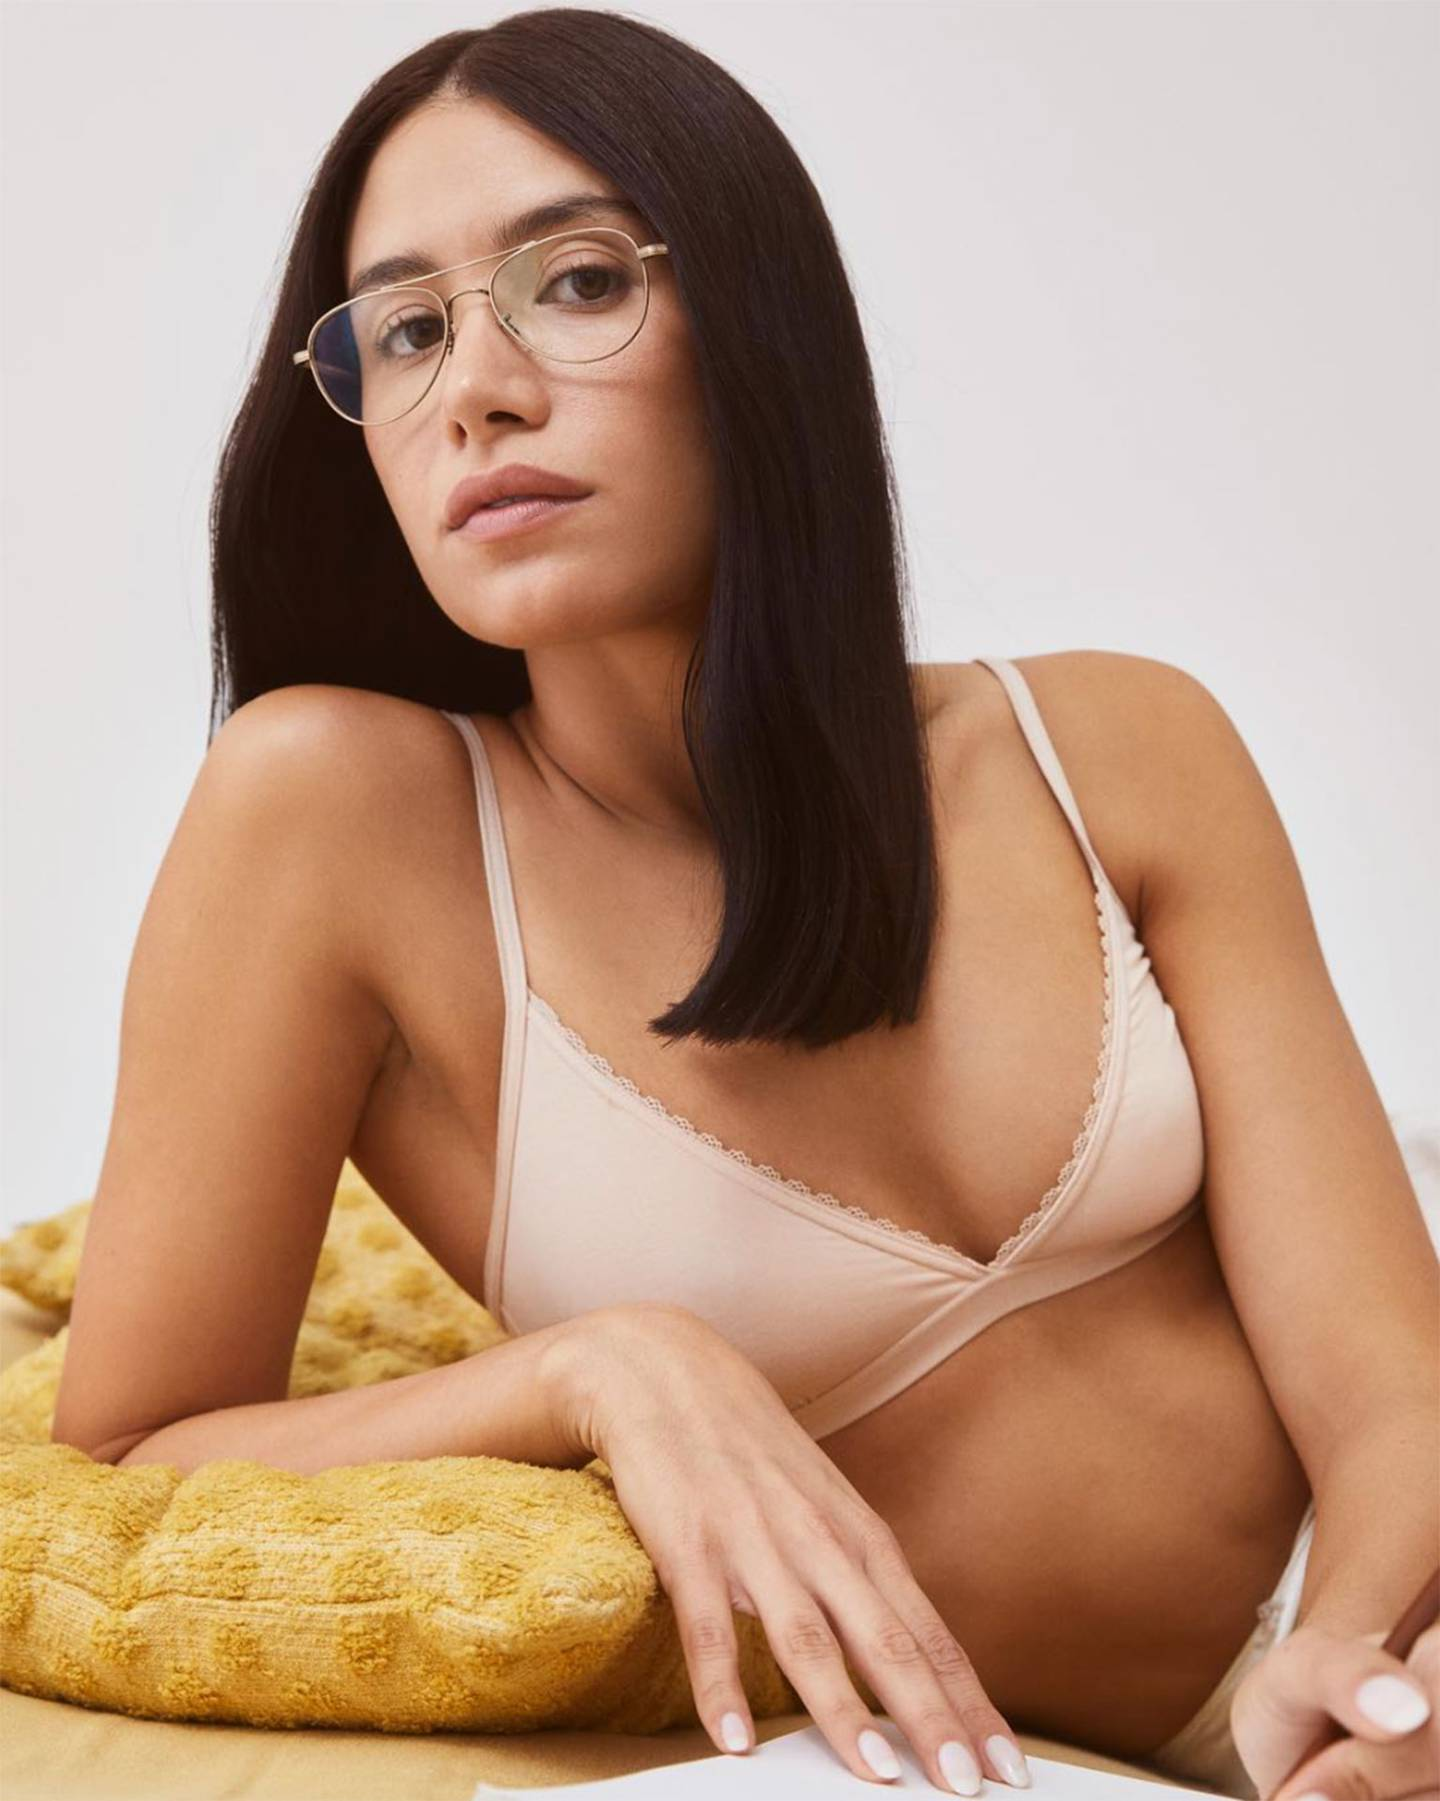 b5f604739d1 Cult Brand Reformation Launches Sustainable Underwear